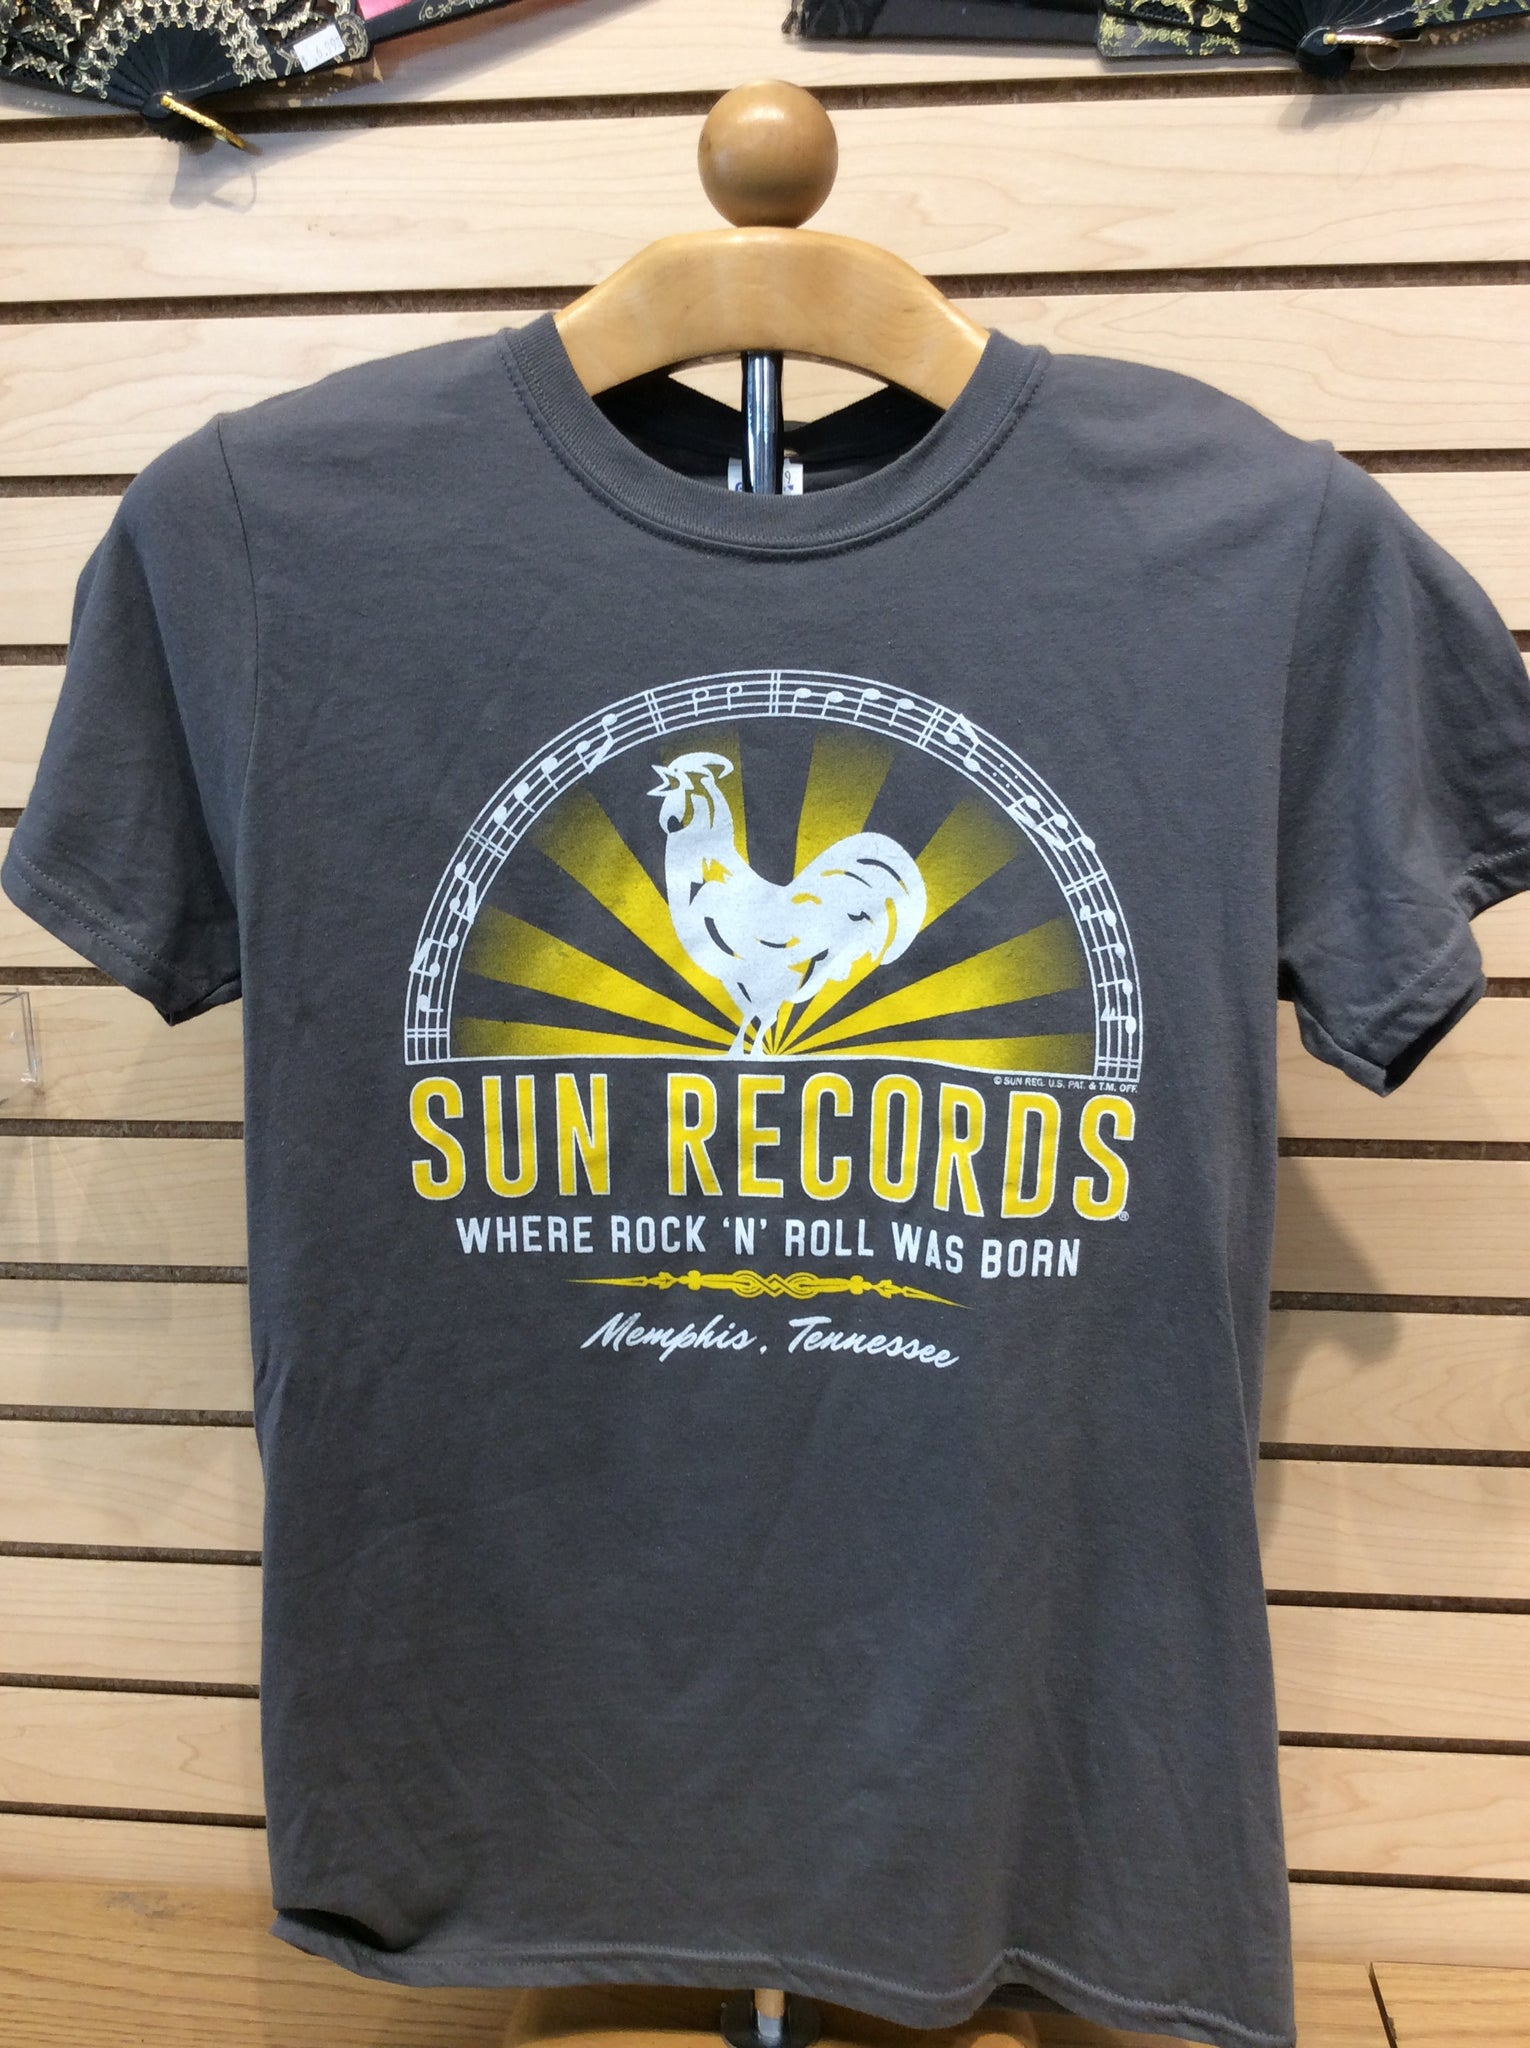 T-Shirt Sun Records/Rooster R-N-R Was Born